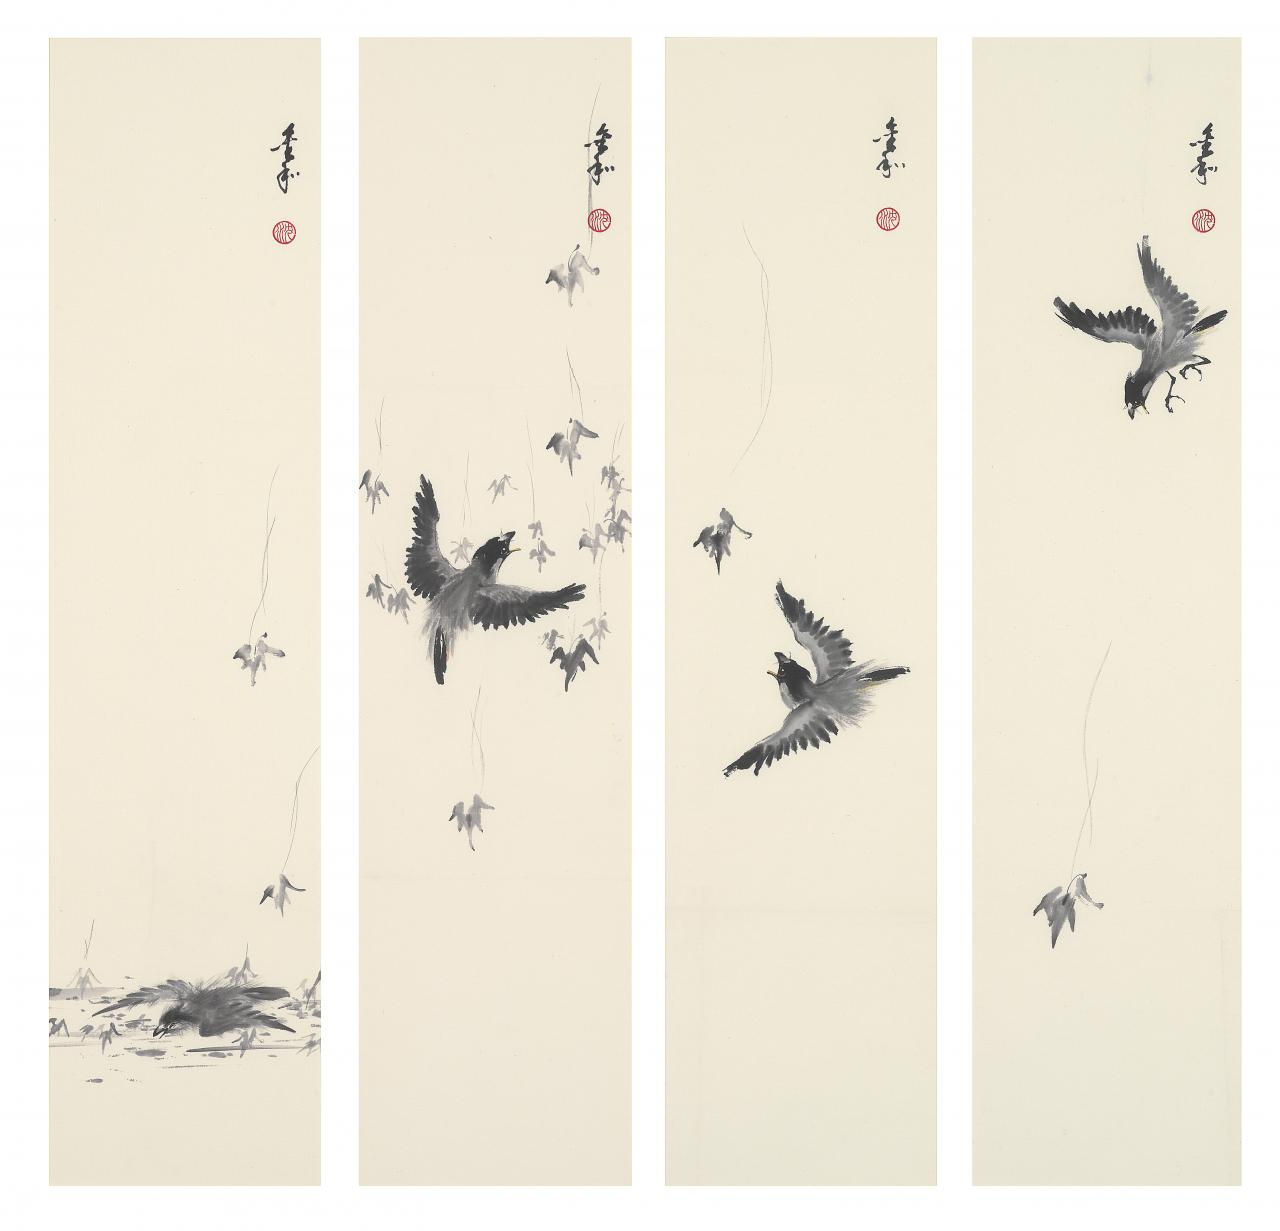 zen on life spirituality in the art of kim hoa tram  ngv -  rituals and objects of worship that were aspects of mahayana buddhismsee brinker p  addiss p  j fontein  m l hickman zen paintingand